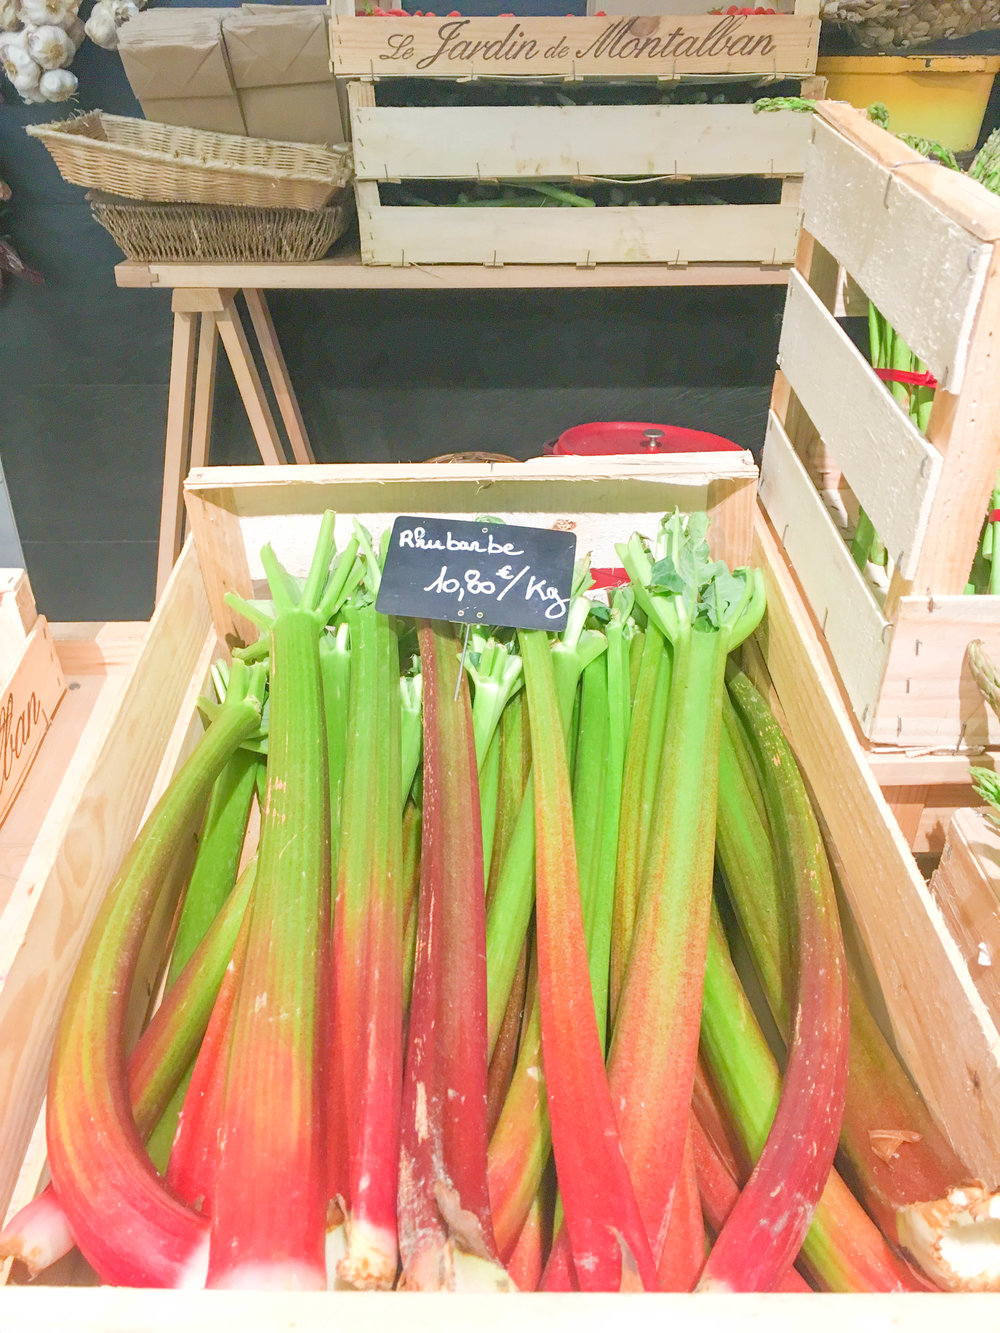 Rhubarb at Marche Saint-Germain in Paris